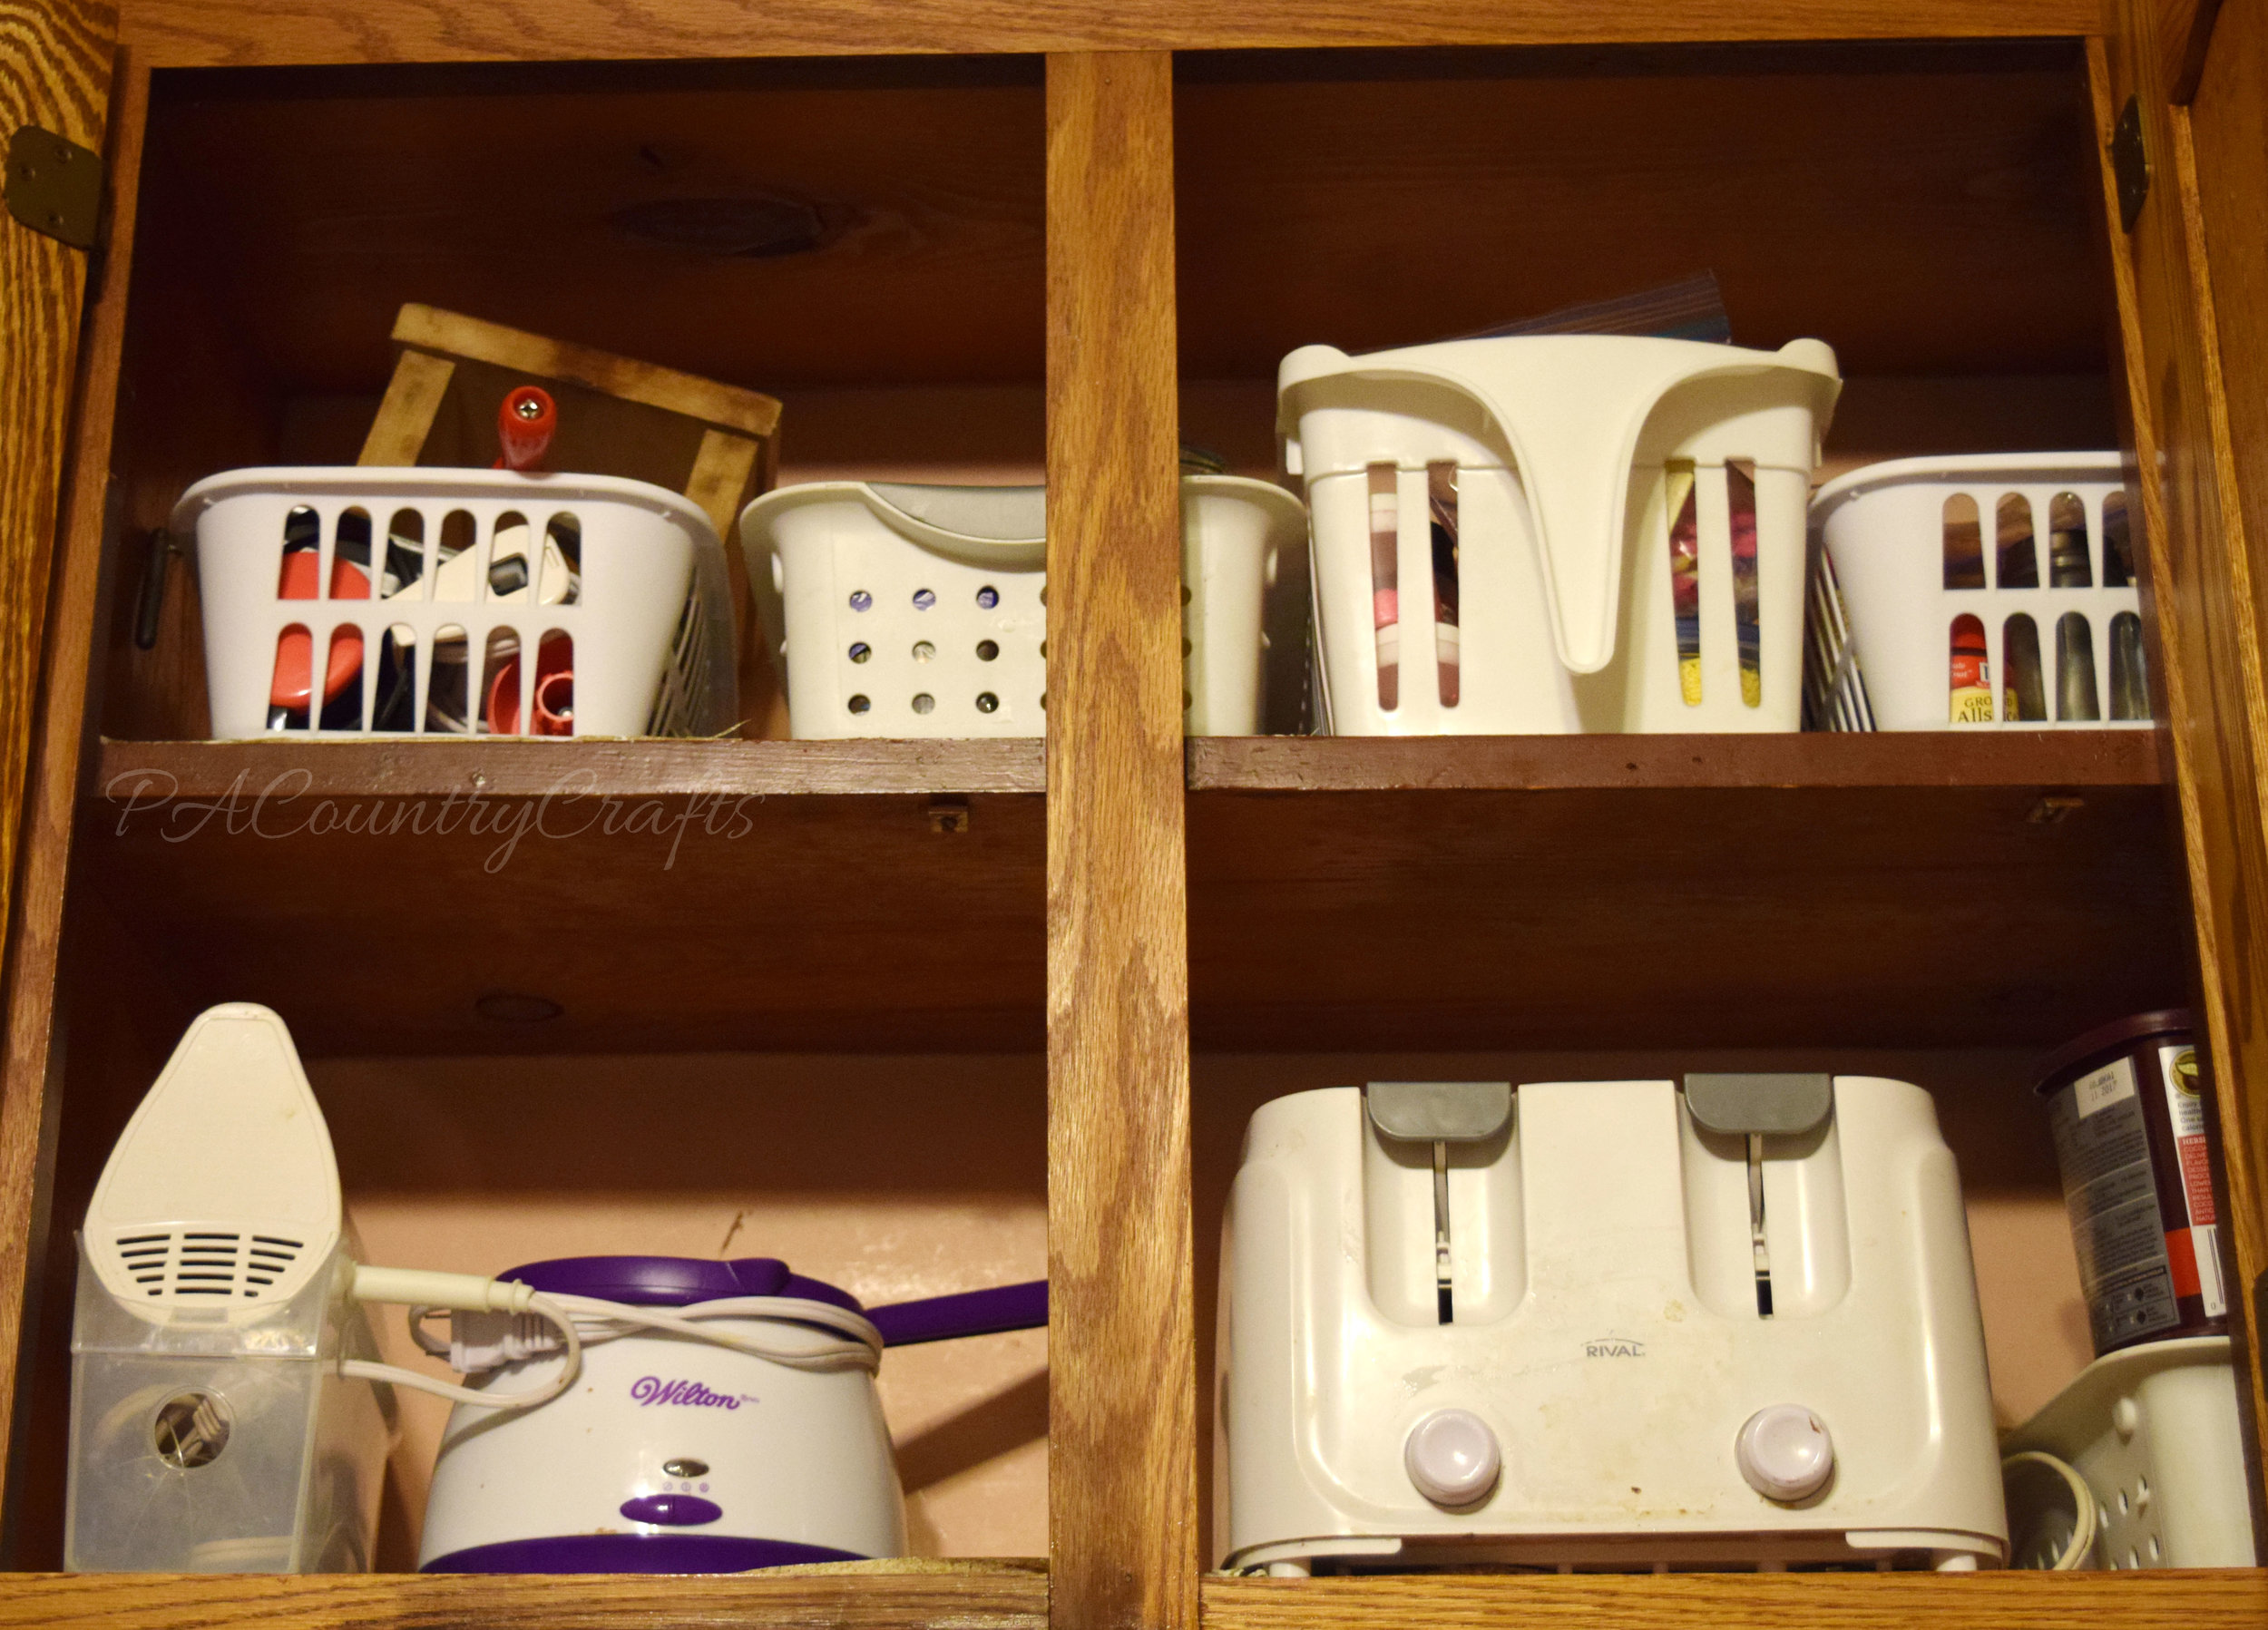 How to organize high cupboard shelves with plastic bins.